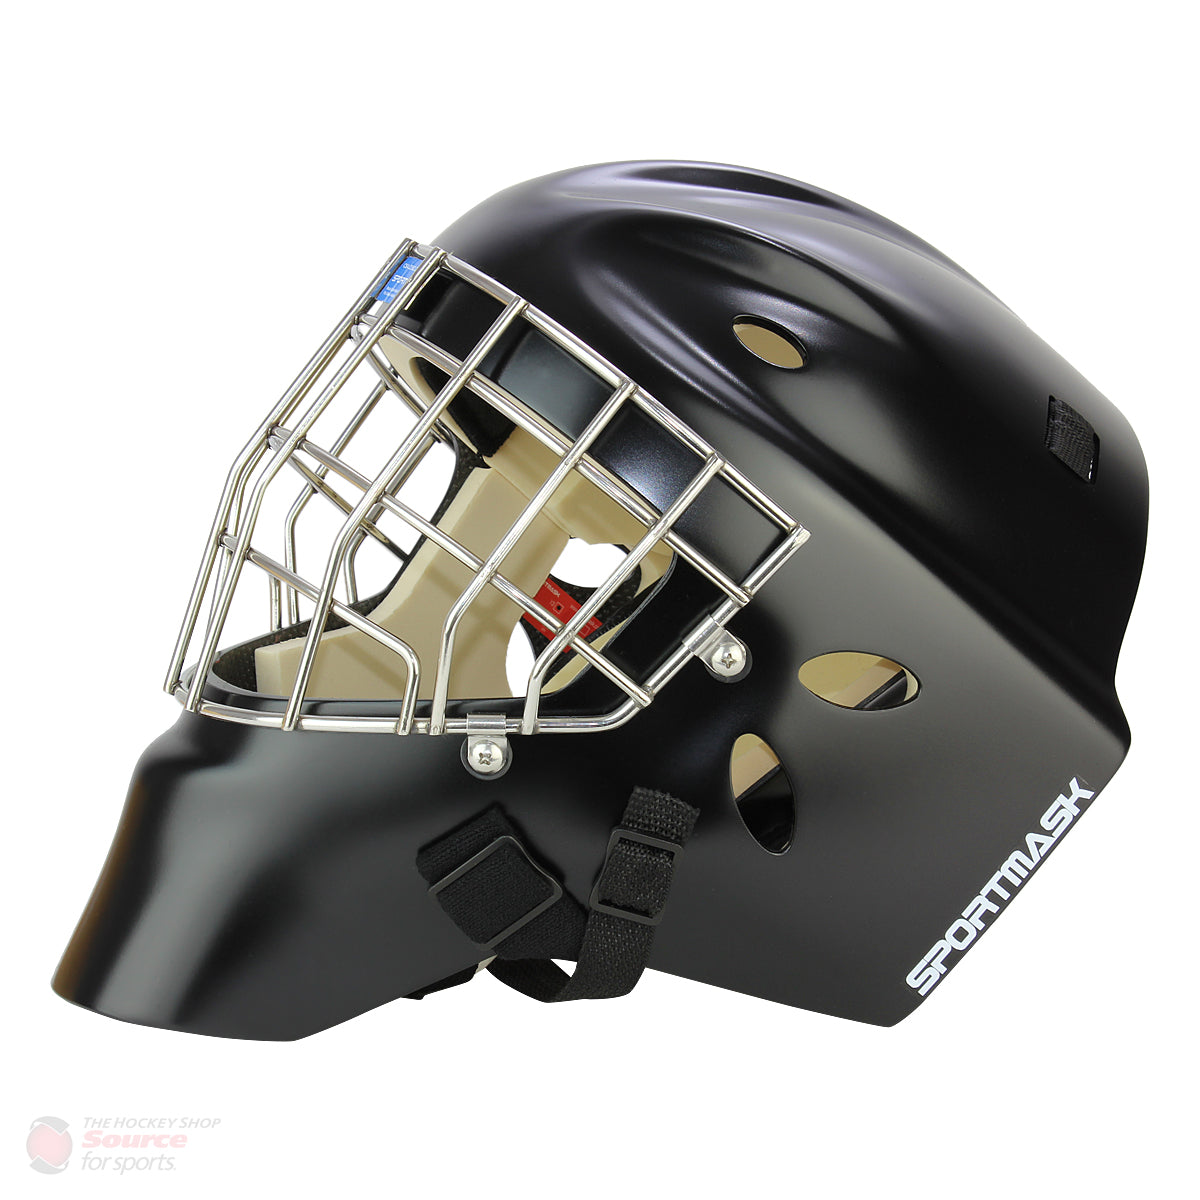 Sportmask T3 Senior Goalie Mask - Matte Black